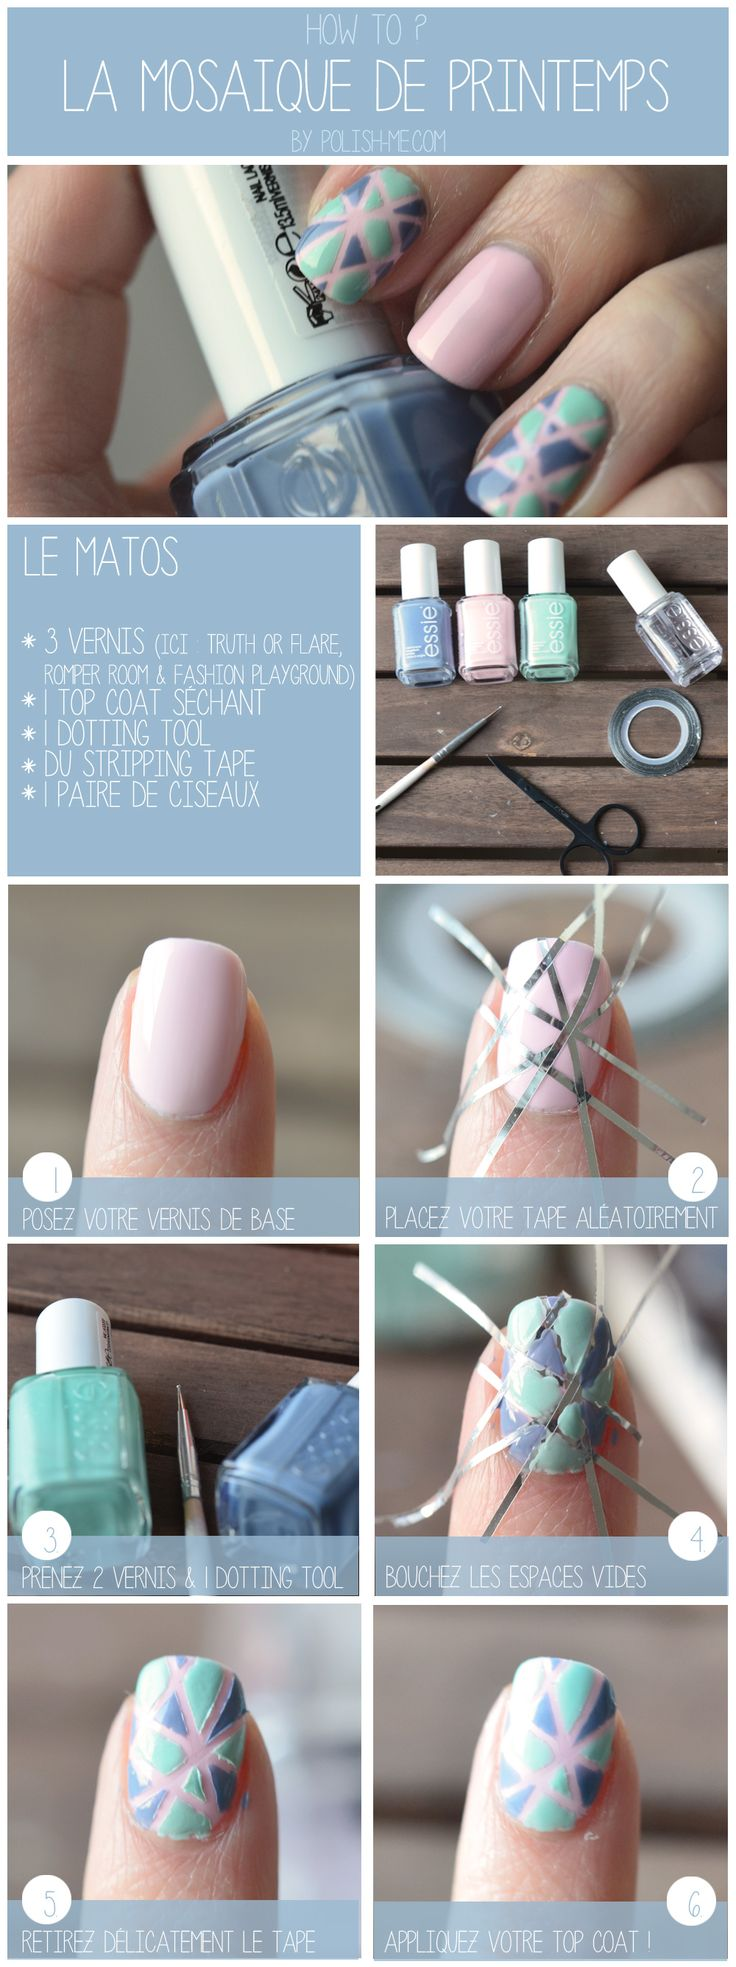 Tutoriel Nail Art mosaïque de printemps ! #PolishMe #NailArt #Nails #Essie